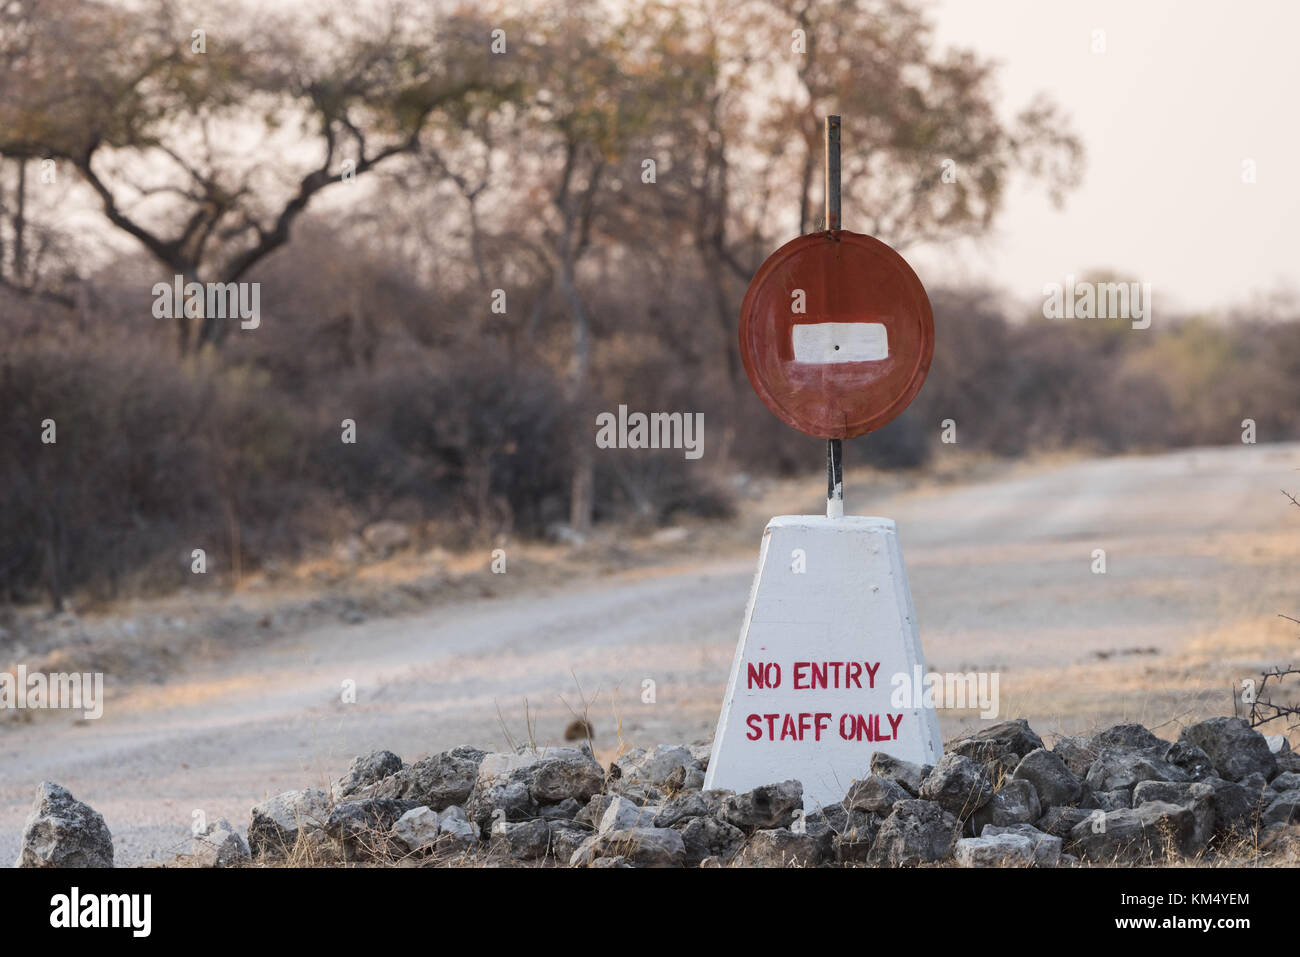 Hand painted no entry sign along road in Etosha National Park, Namibia - Stock Image